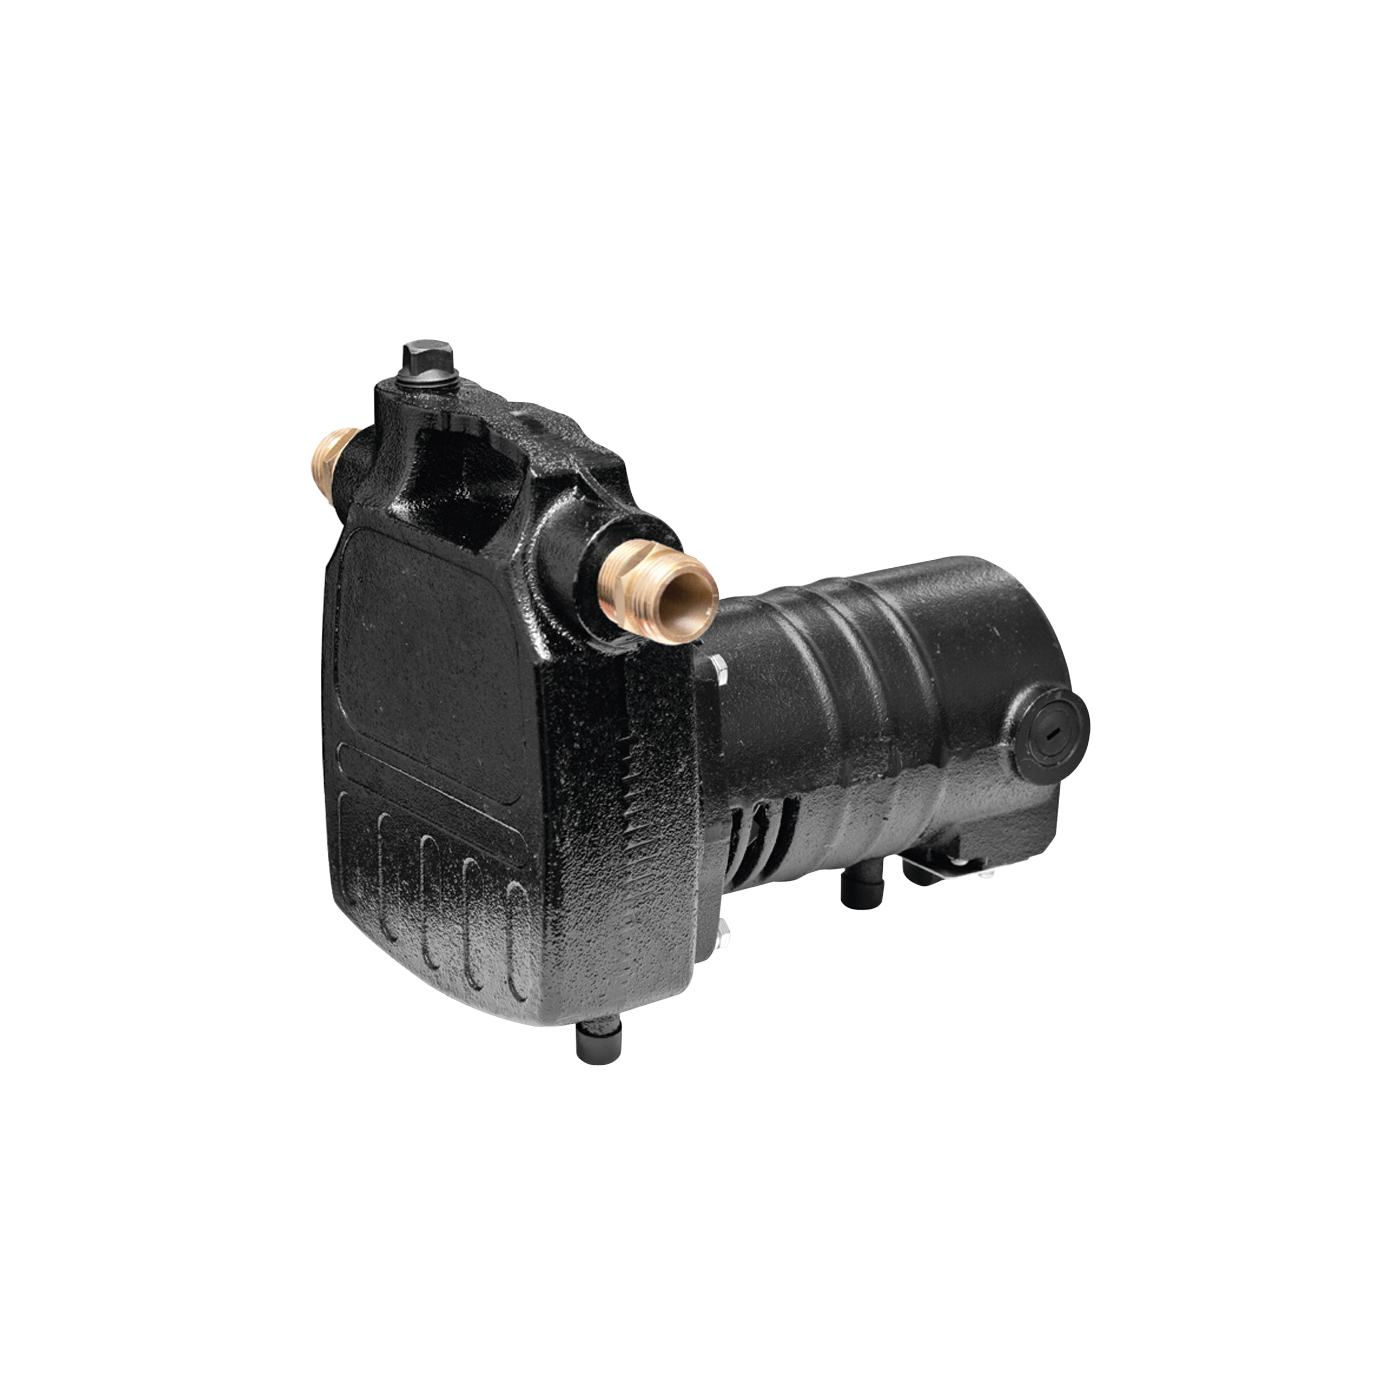 Picture of SUPERIOR PUMP 90050 Transfer Pump, 8.4 A, 120 V, 0.5 hp, 3/4 in Outlet, 1320 gph, Iron